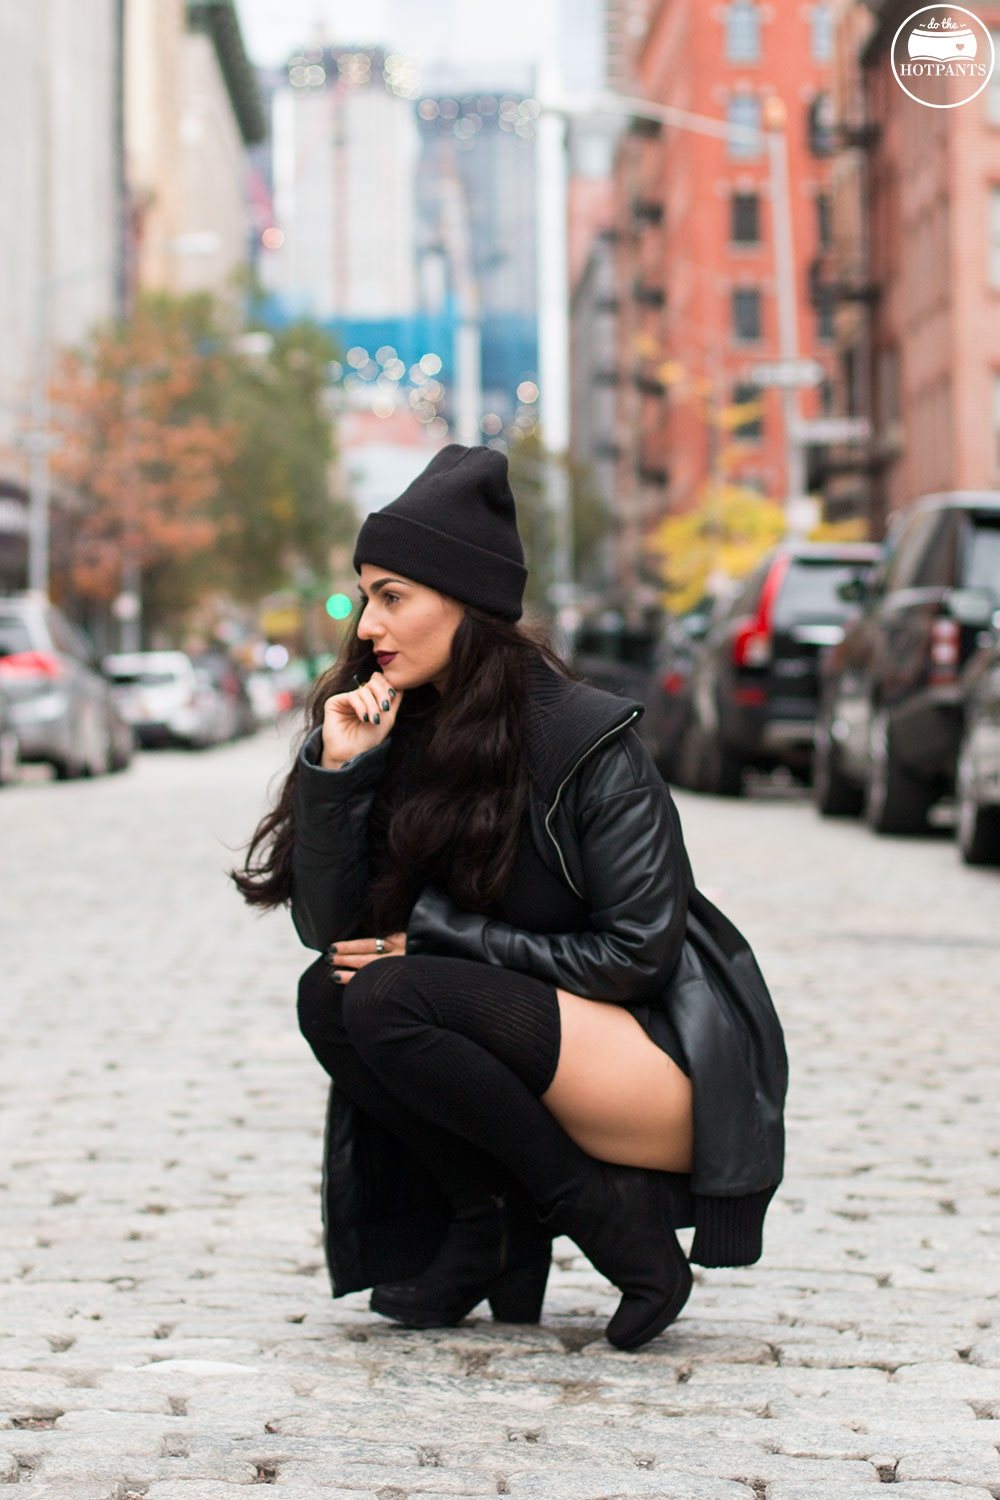 Do The Hotpants Dana Suchow Goth Outfit Black Beanie Thigh High Socks Crop Top Black Leather JacketIMG_5372